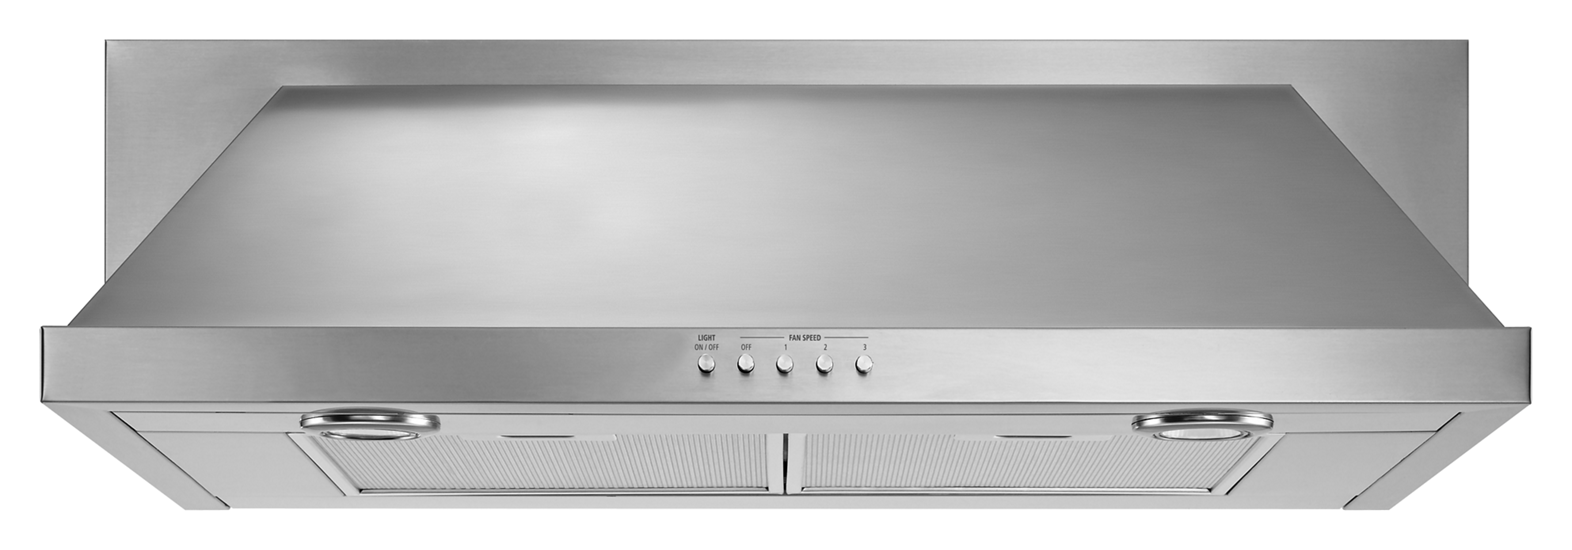 Whirlpool white ice cooktop - Features